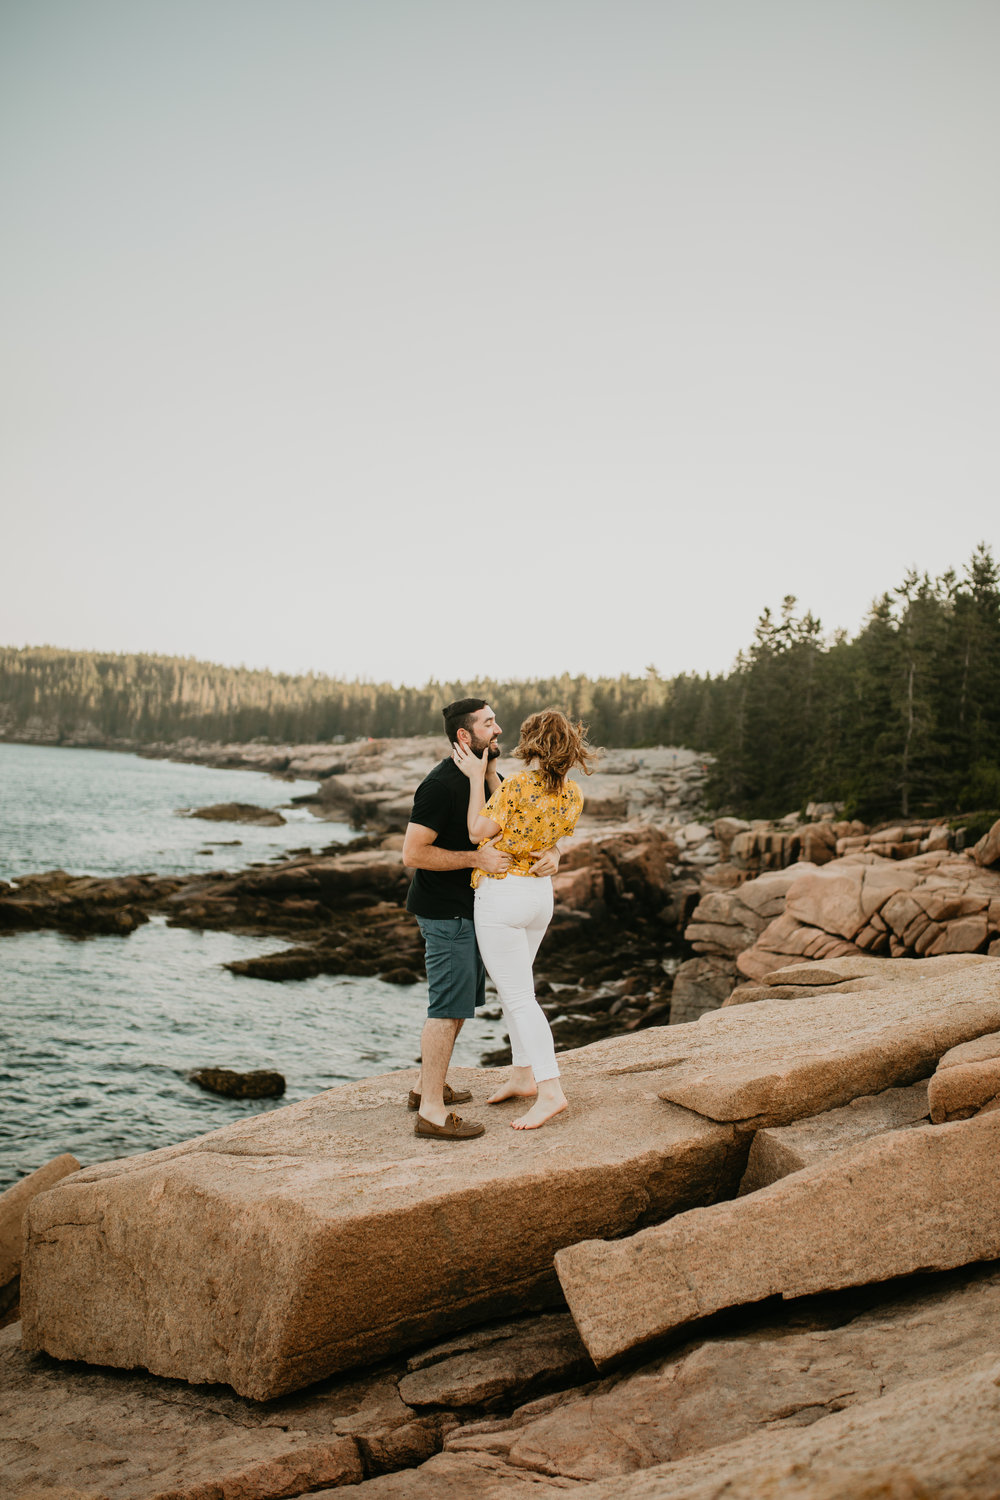 nicole-daacke-photography-acadia-national-park-engagement-photos-session-little-hunters-beach-sunset-cadillac-mountain-thunder-hole-otter-cliffs-couples-session-acadia-elopement-photographer-pine-trees-ocean-maine-26.jpg